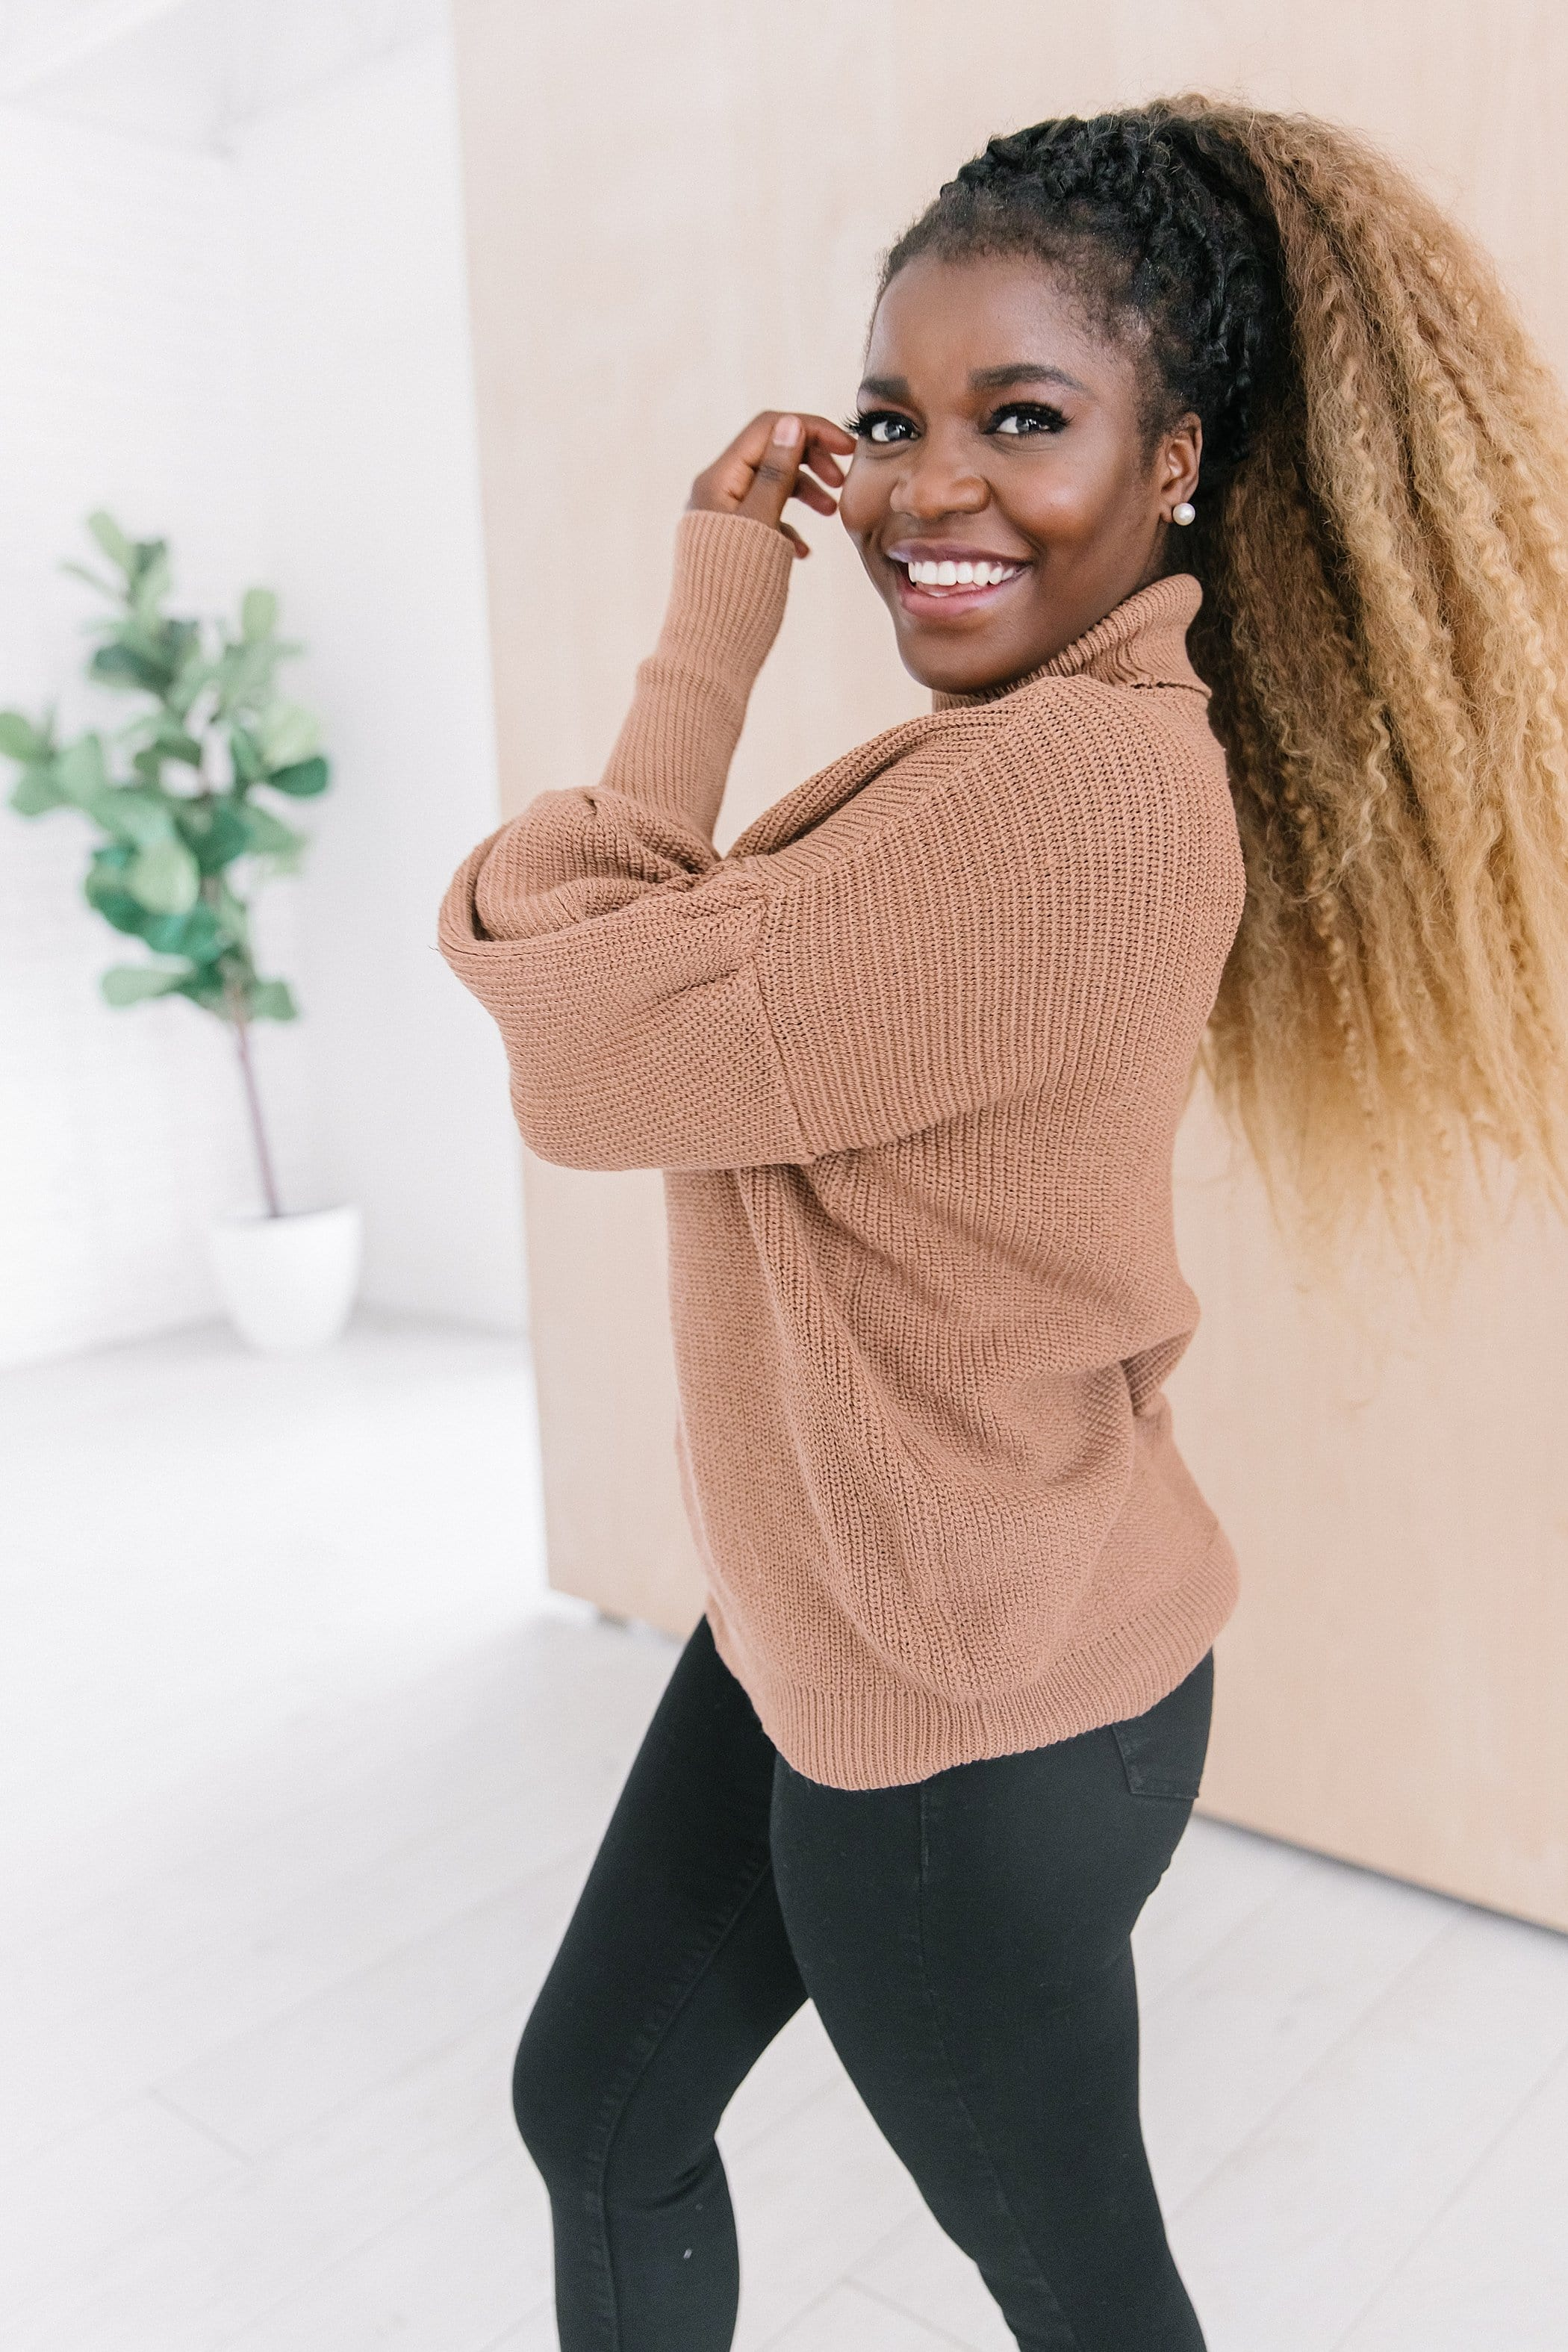 The Denton Puff Sleeve Sweater in Camel and Hunter Green